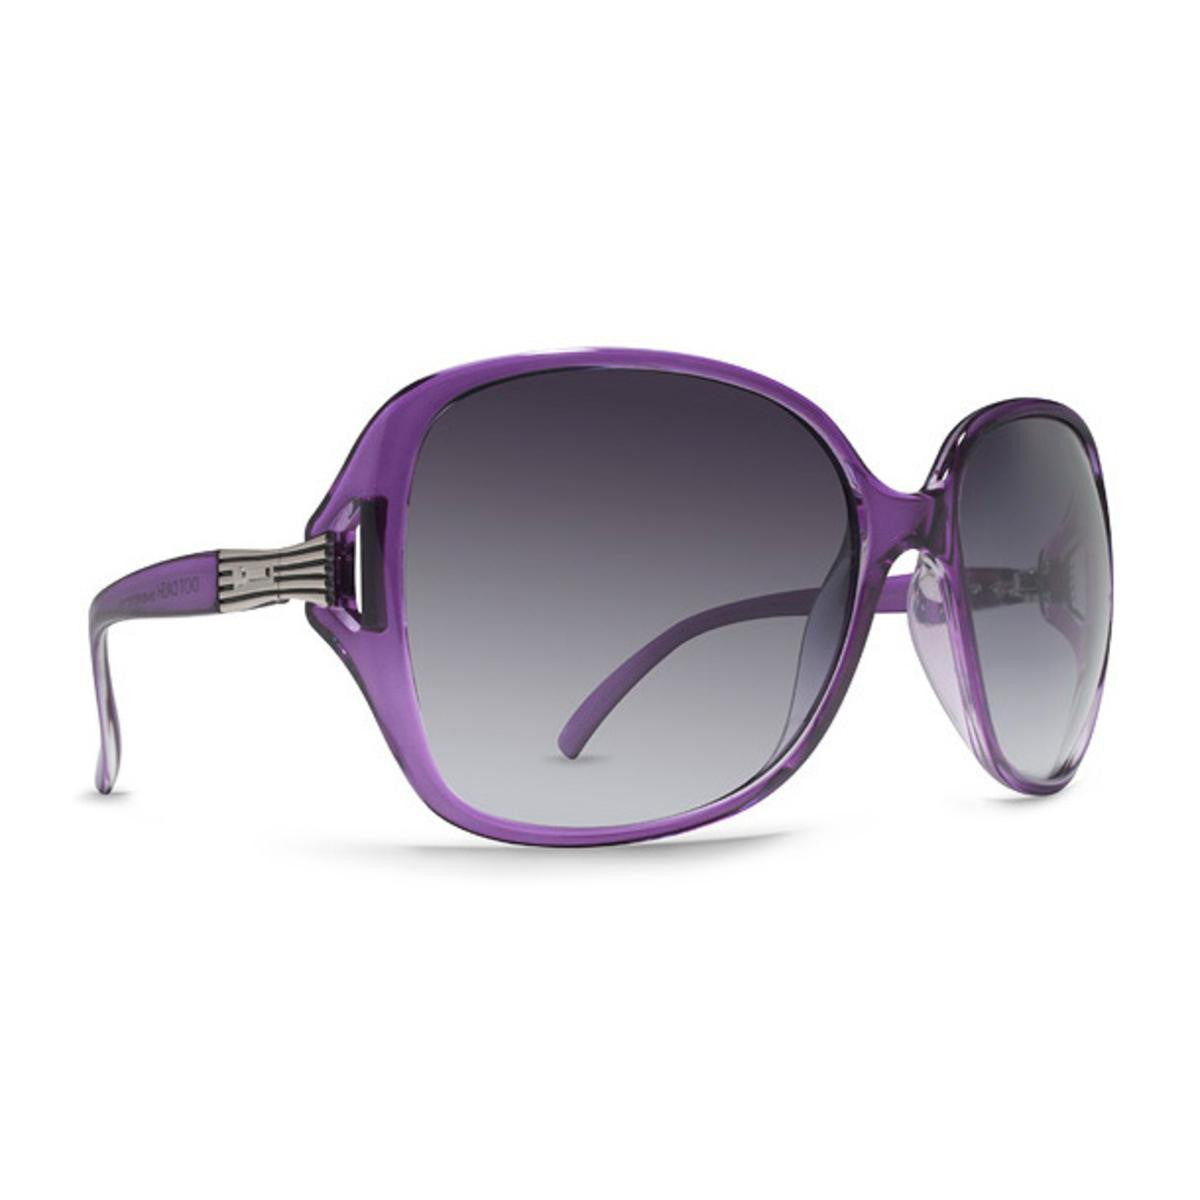 Dot Dash Aura Sunglasses